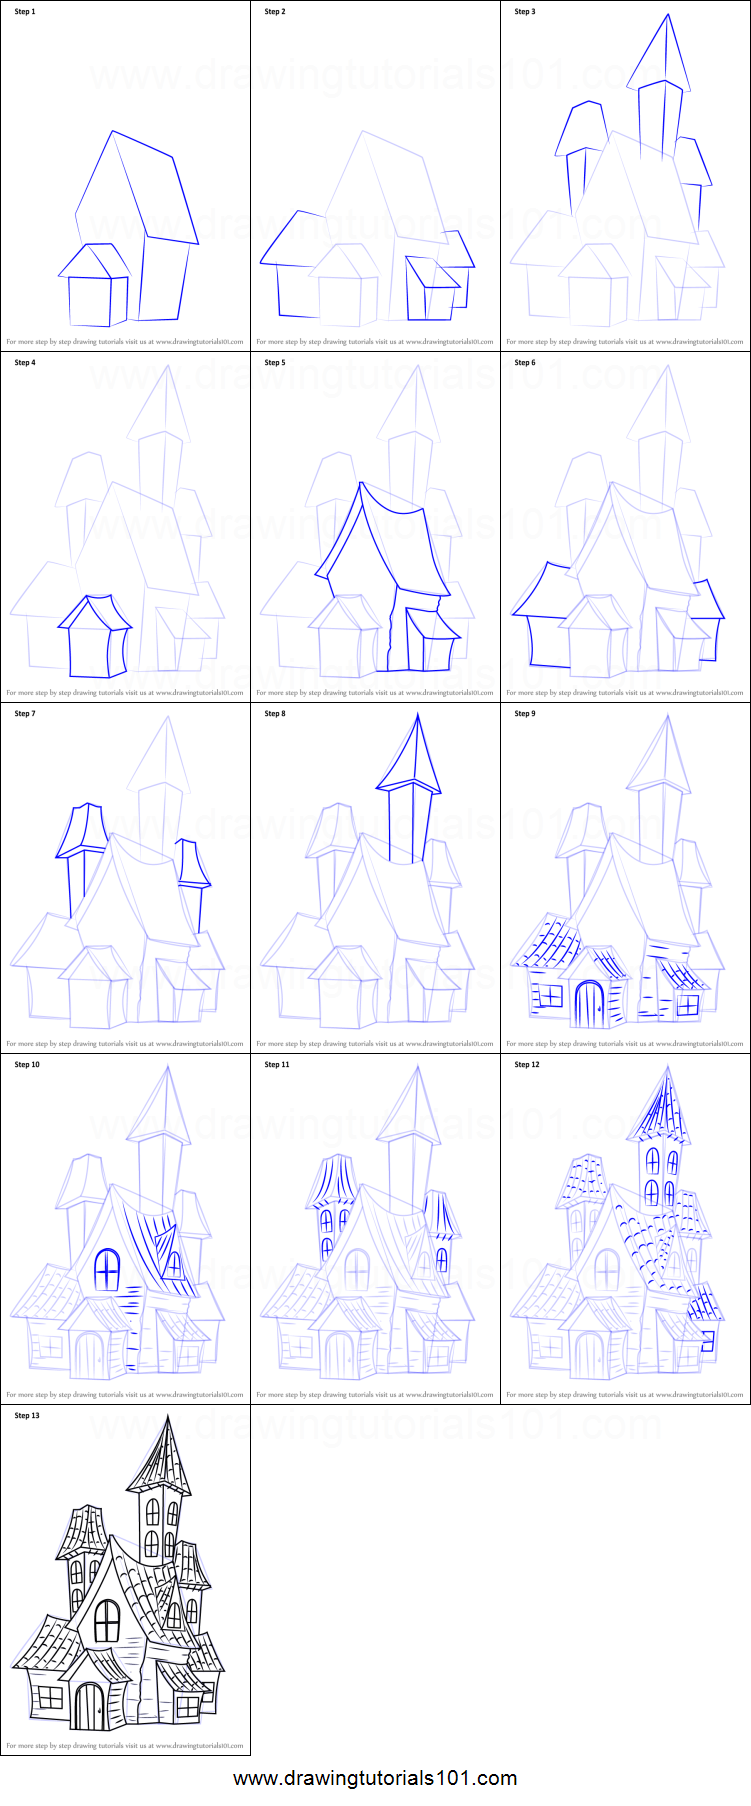 Step by step drawing tutorial on how to draw a spooky haunted house